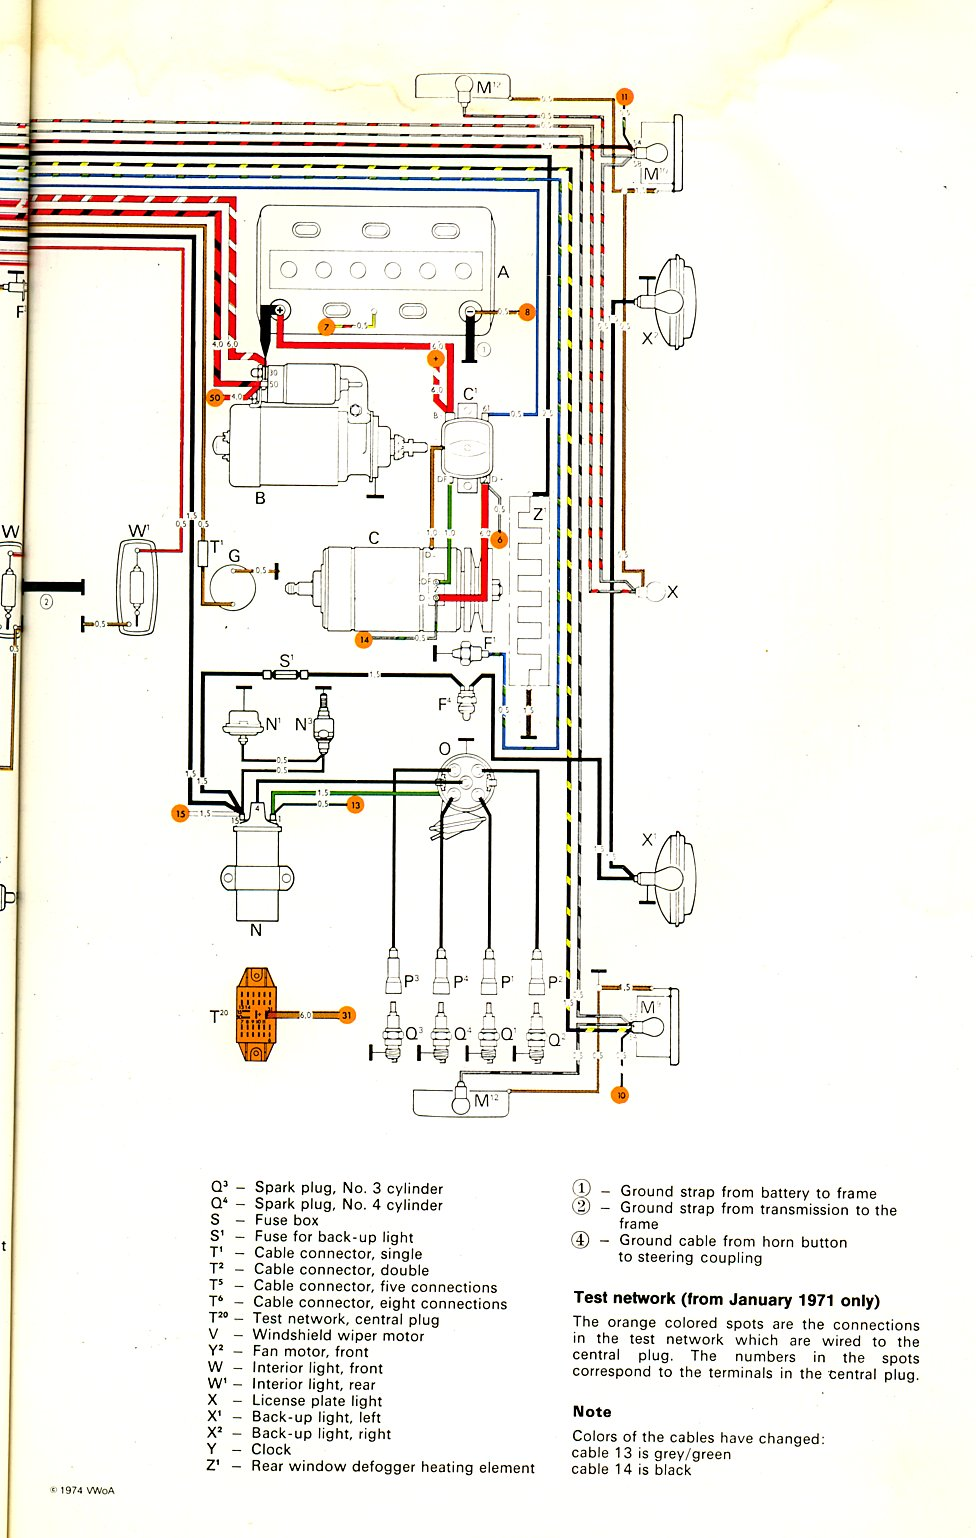 Type 2 Wiring Diagrams Mg Midget Fuse Box Diagram